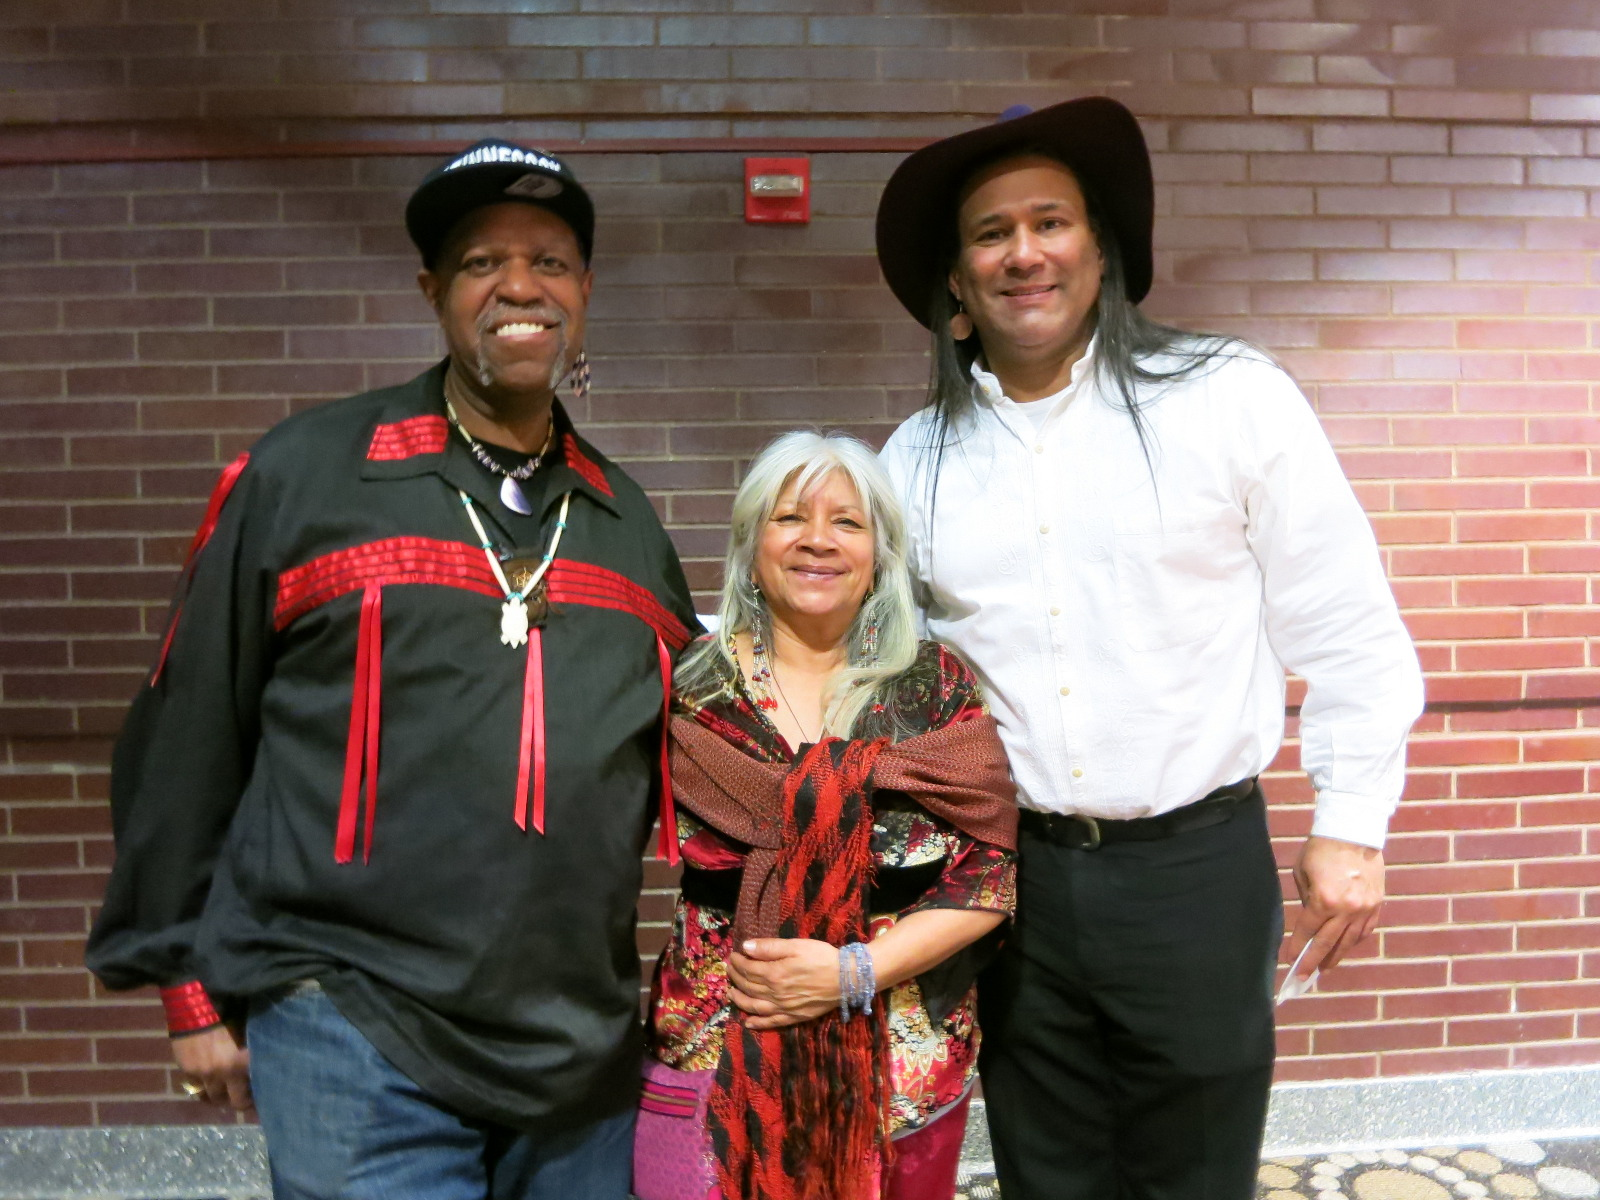 Reggie Herb Dancer Ceaser, Soni Moreno and John Scott Richardson Native American Music & Ceremony performers for the films: AMERICAN OUTRAGE by George & Beth Gage, STANDING ON SACRED GROUND  by Christopher McLeod and  OLDER THAN AMERICA by Georgina Lightning.